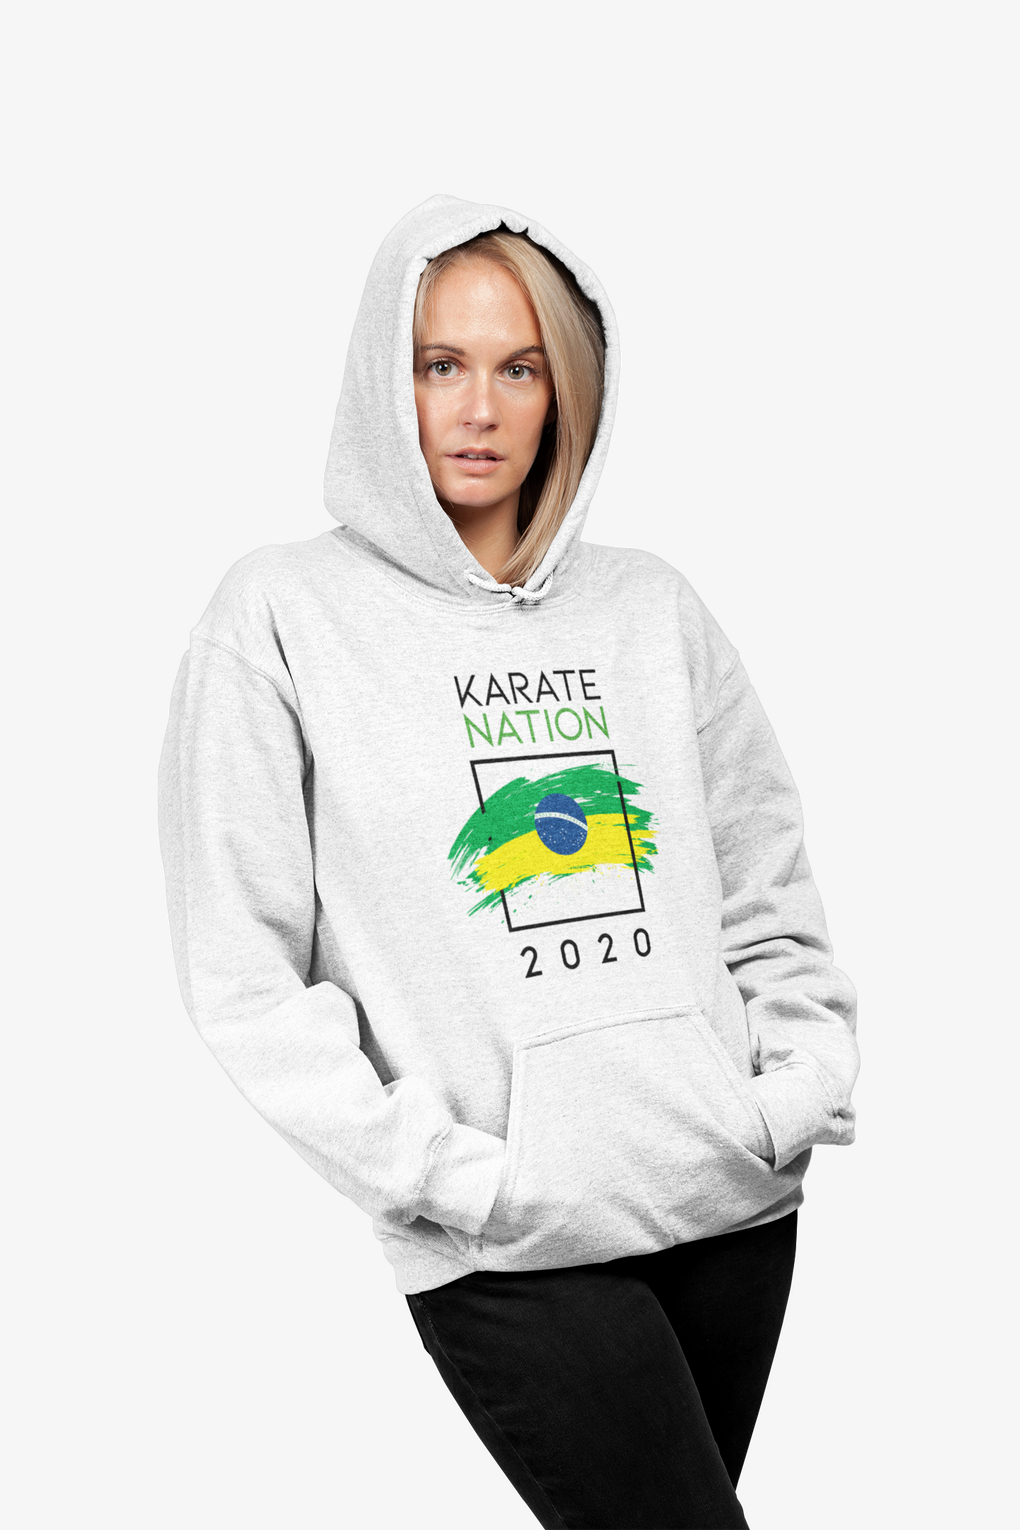 Karate Nation Brazil Square Design Hoodie - Unisex